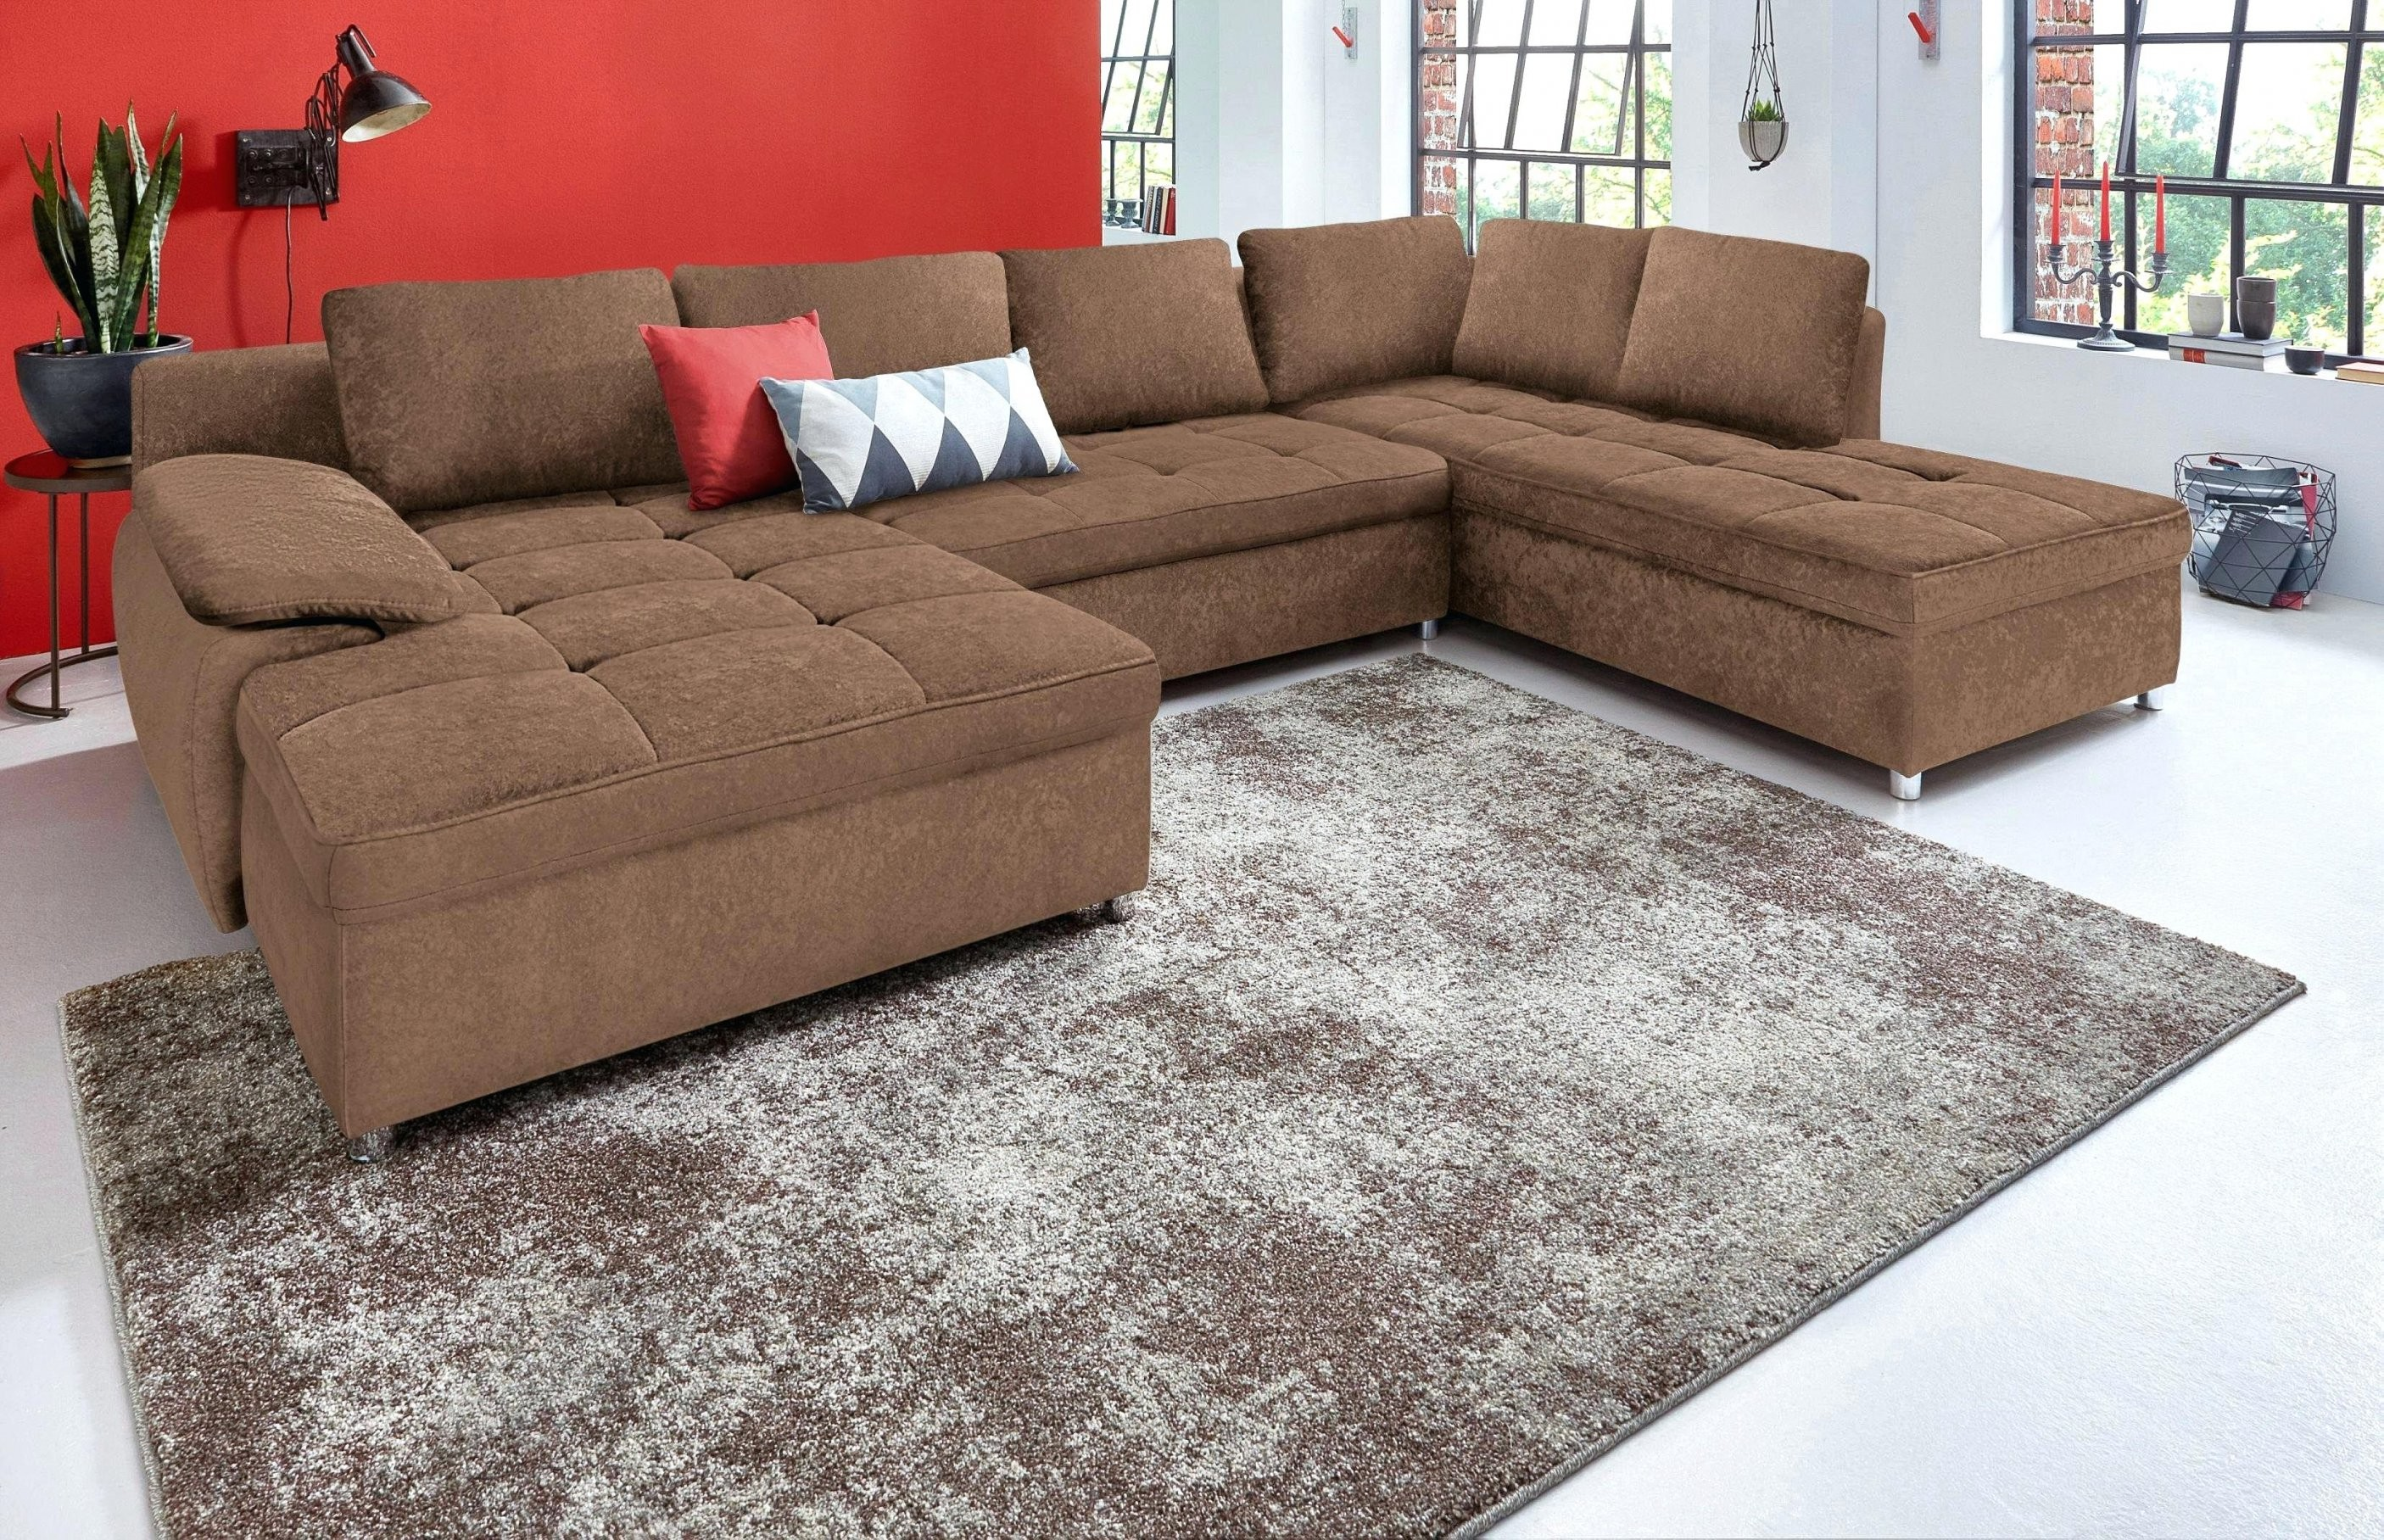 Xxl Sofa Landhausstil Big Sofa Xxl Landhausstil von Big Sofa Landhausstil Bild